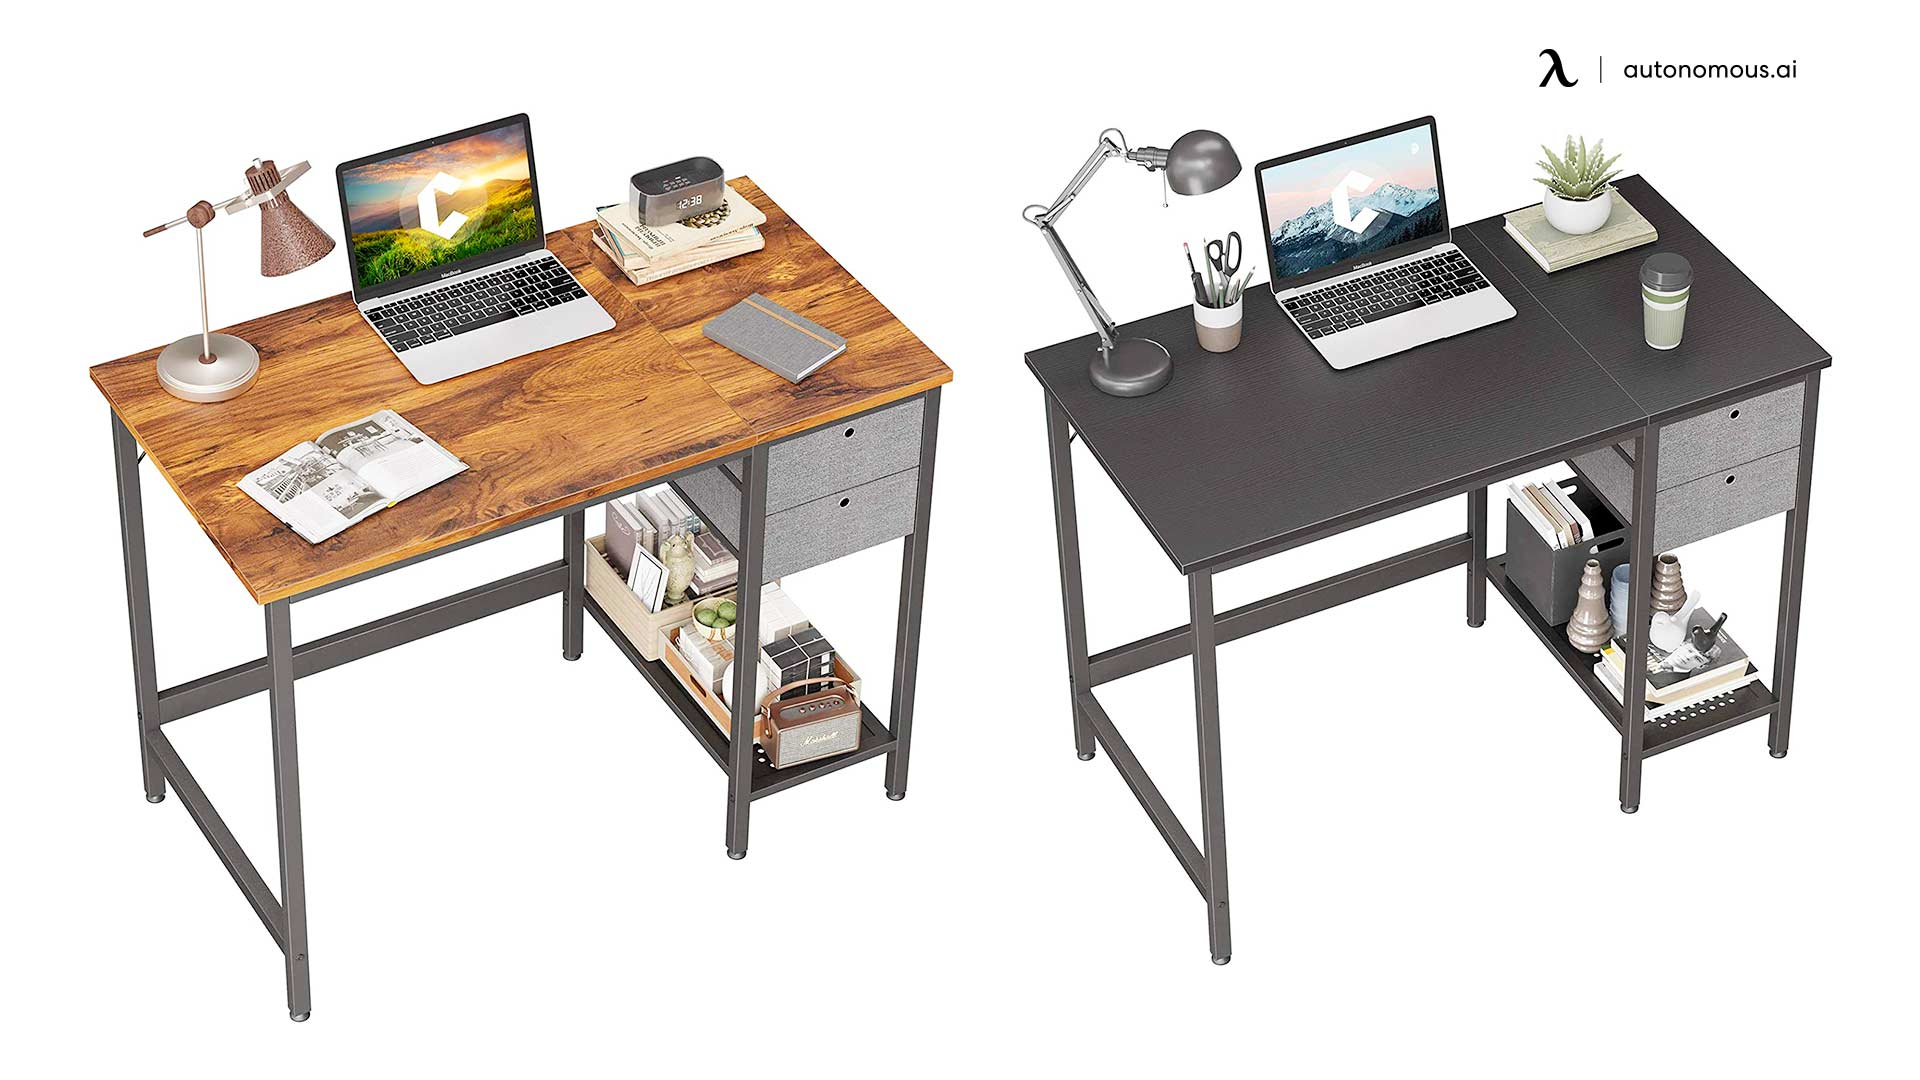 Cubiker Steel Desk with Drawers